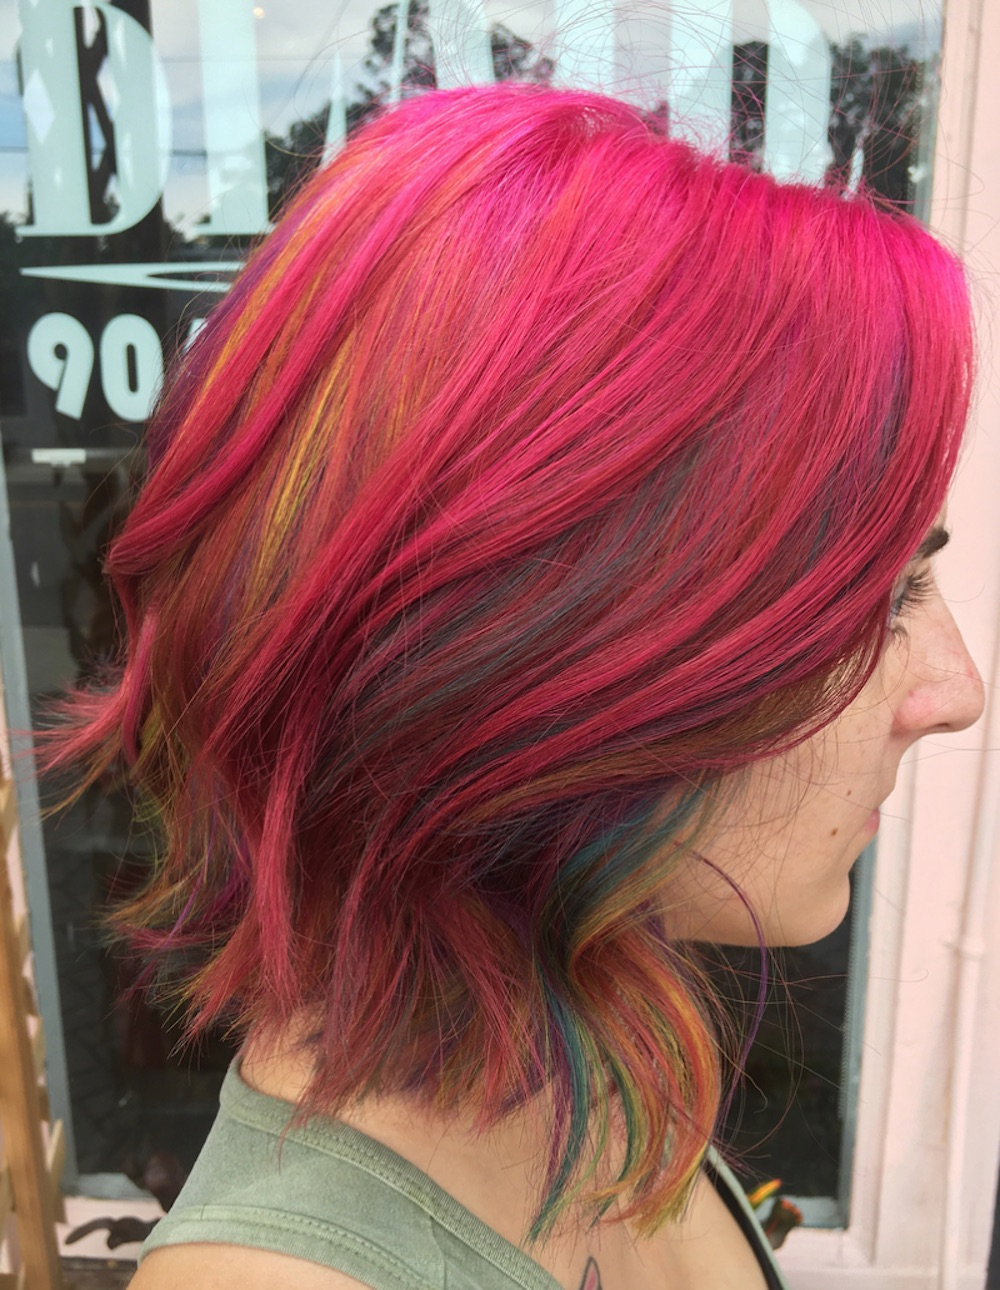 """Fruity Pebbles"" hair is the breakfast-meets-beauty trend you're gonna want to try asap"